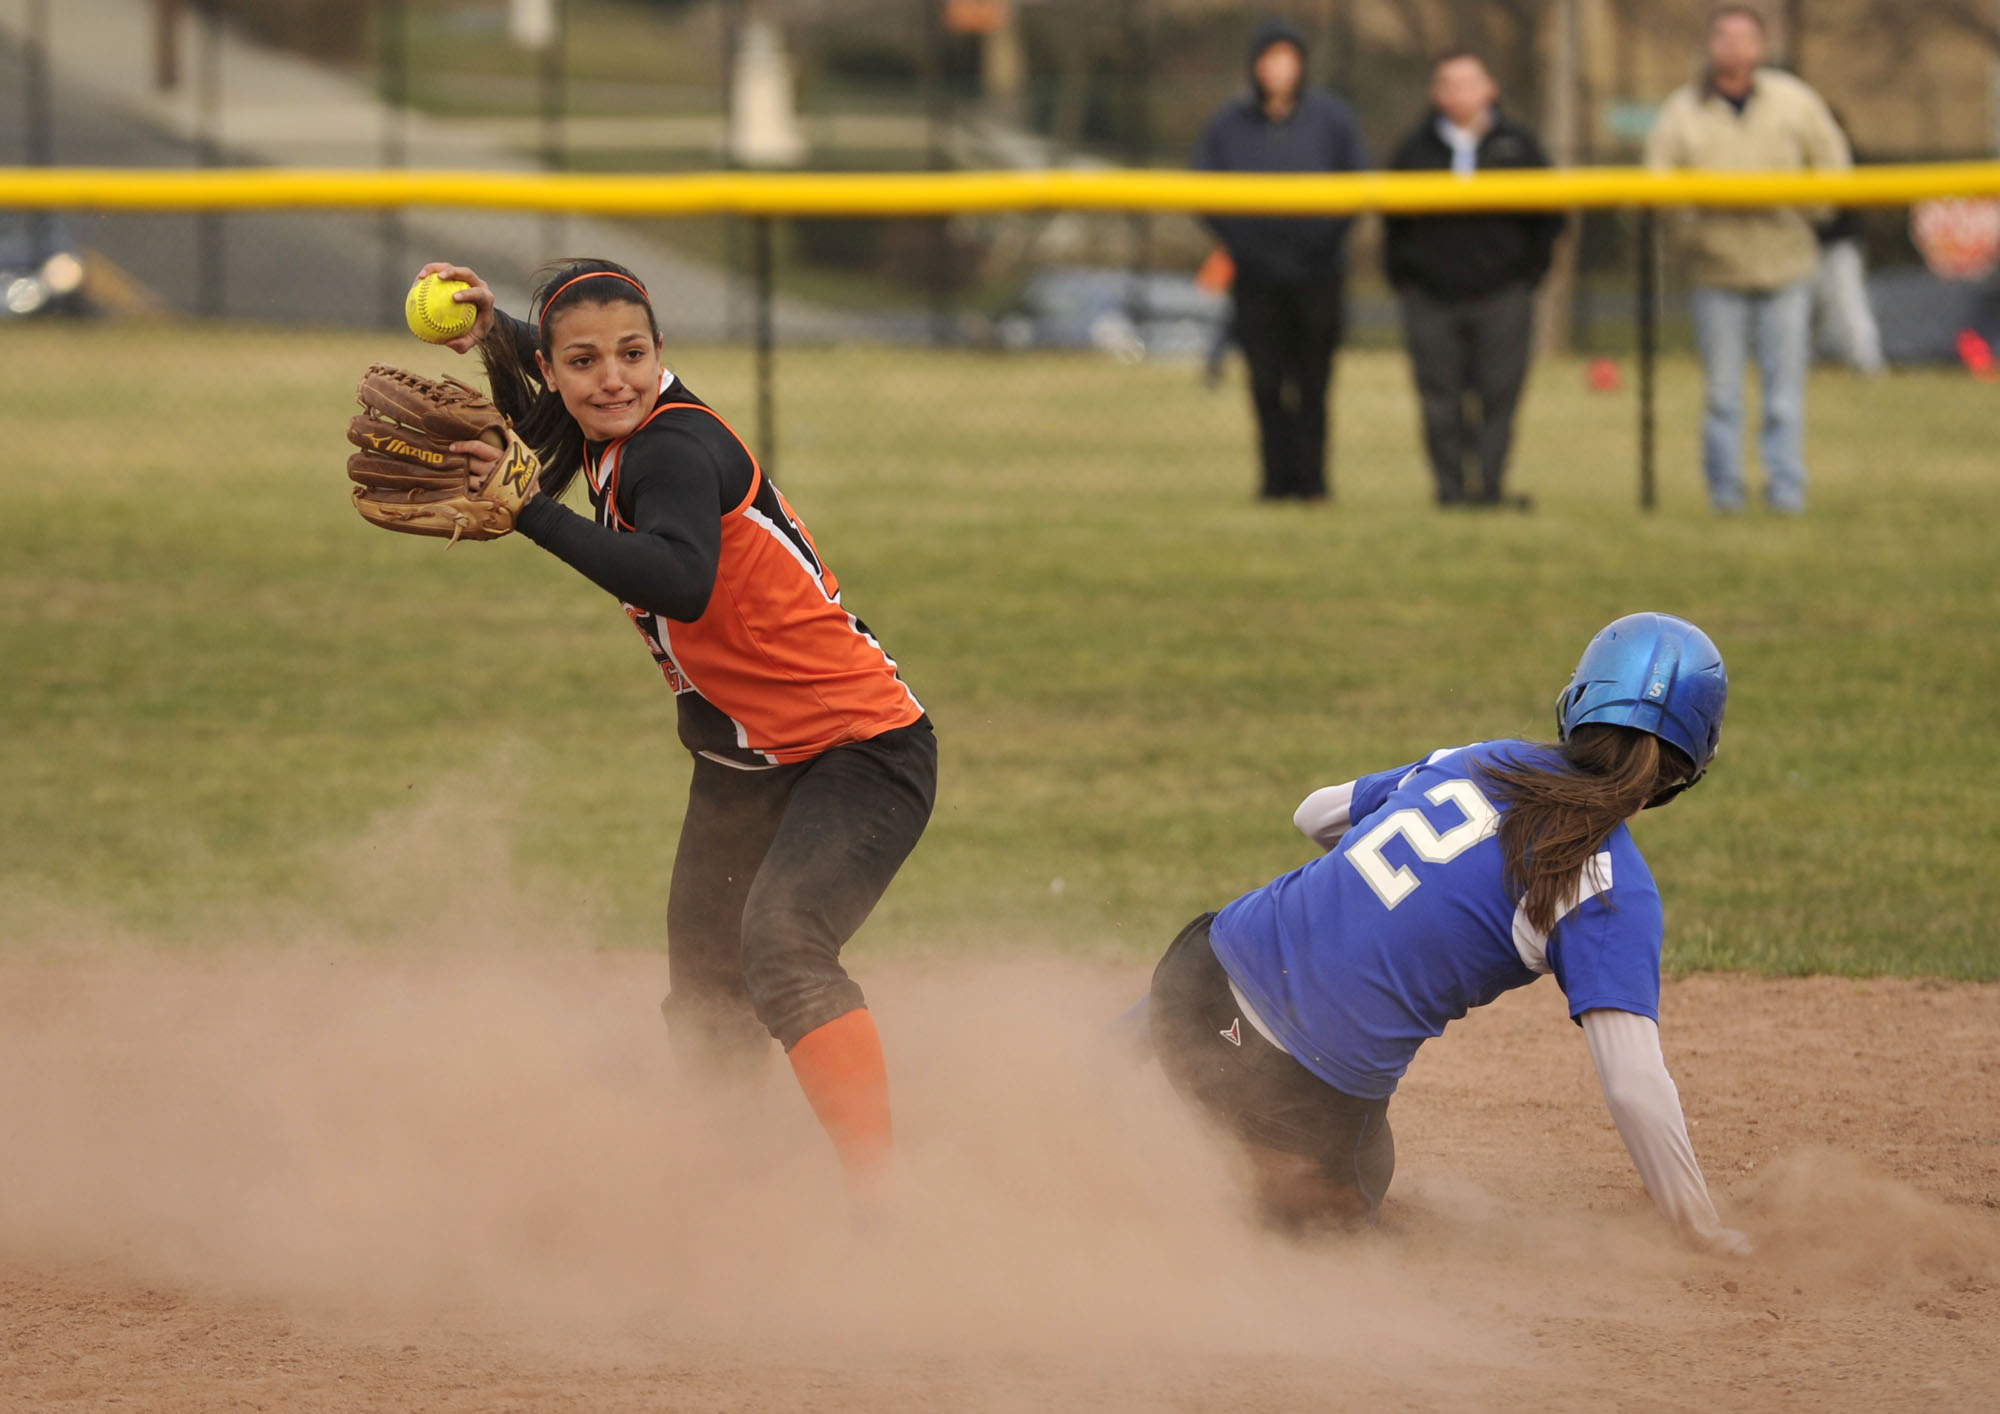 Stamford S Robustelli Excited By Chance To Play Softball